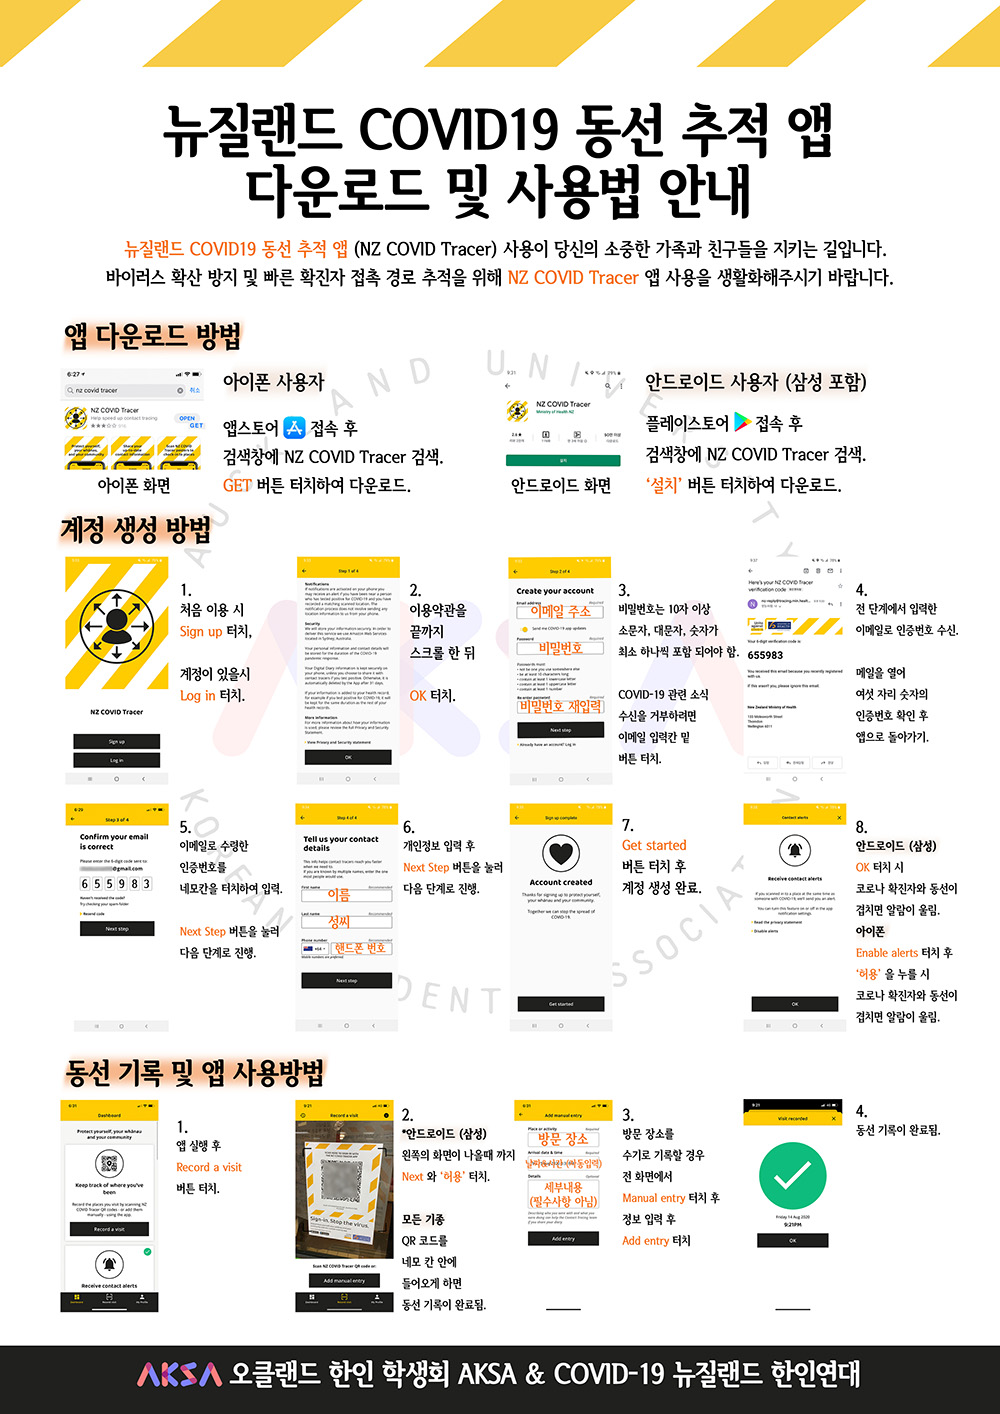 A poster containing many screenshots showing how to download an app